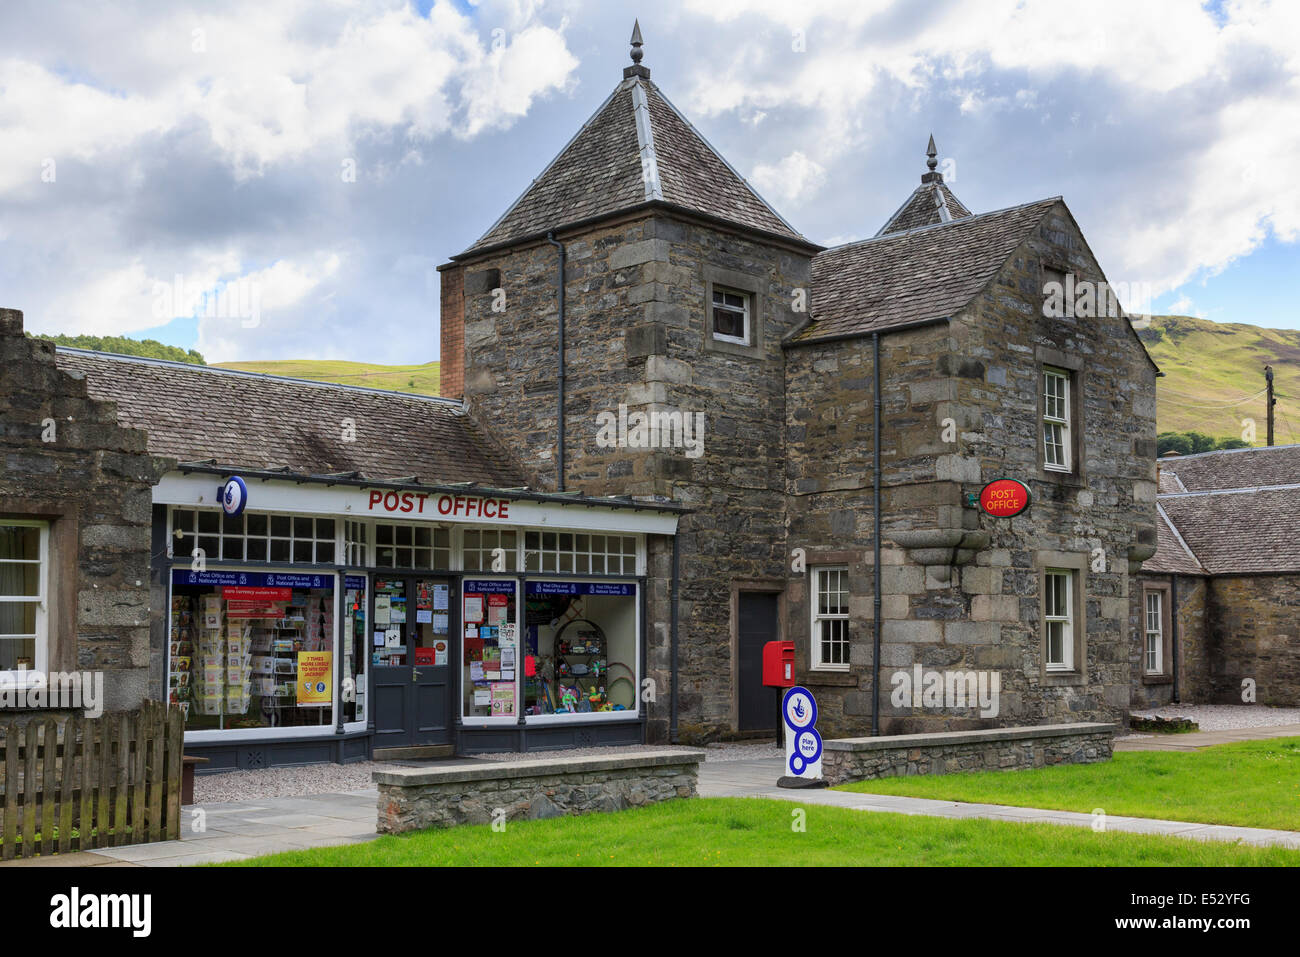 Village Post Office in traditional stone building. Blair Atholl, Perth and Kinross, Scotland, UK, Britain - Stock Image